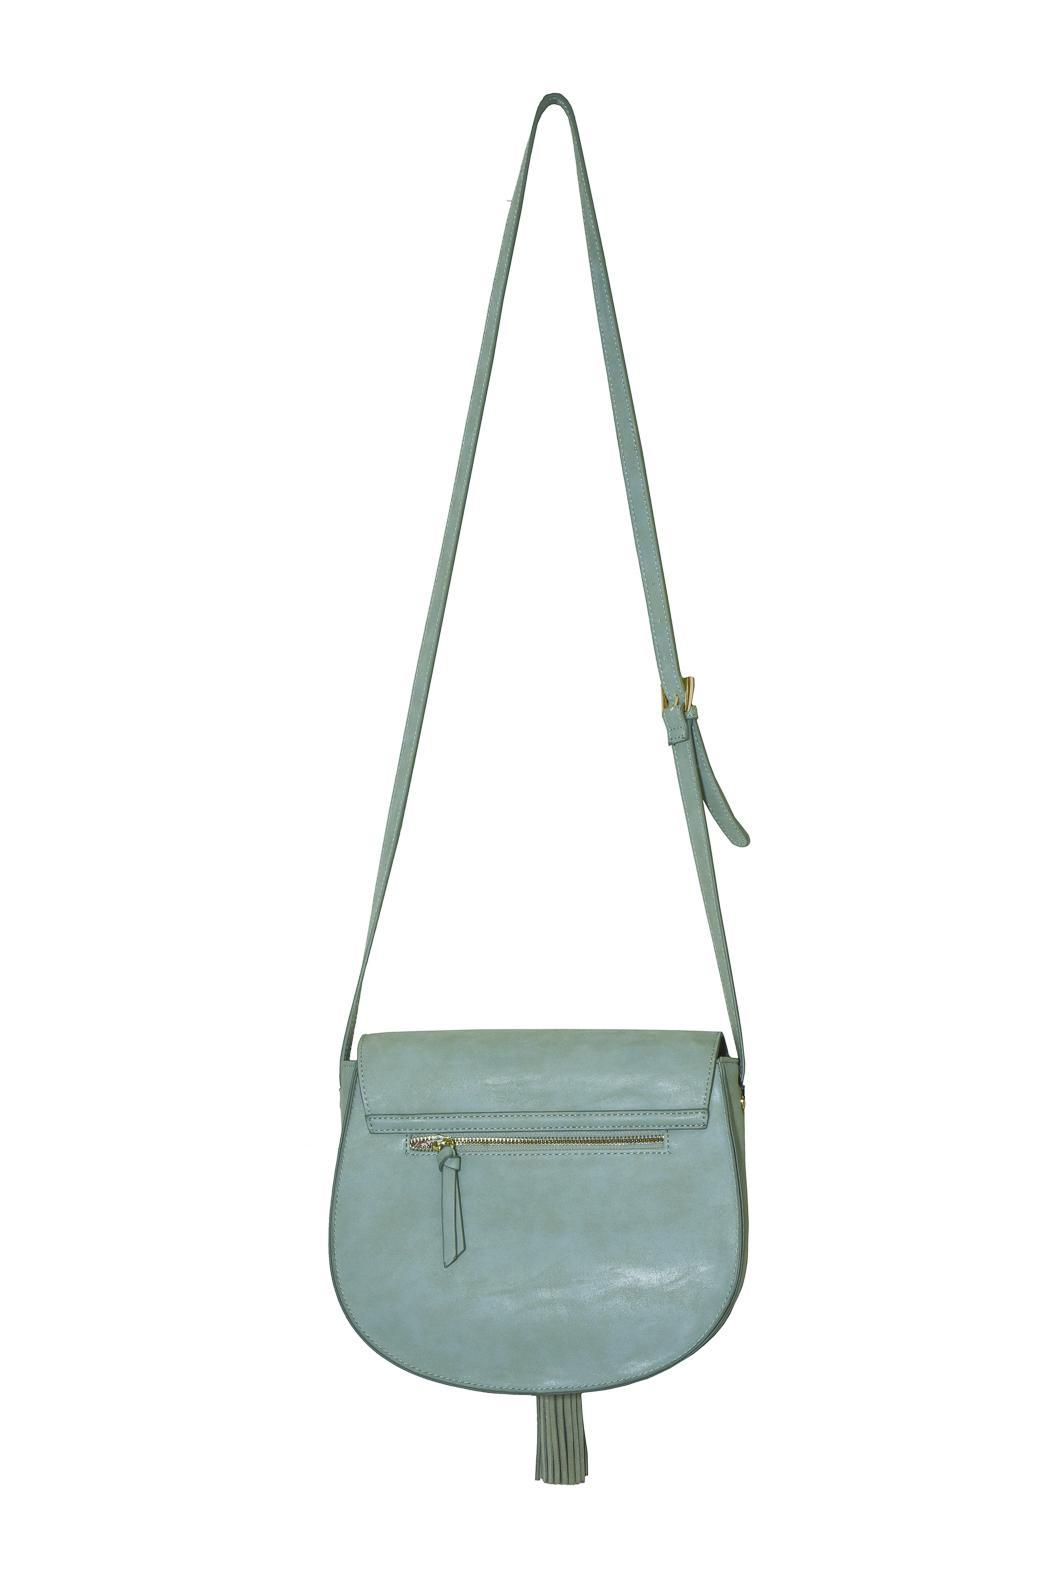 3c9cc6bbf3 Steven by Steve Madden Kingsley Crossbody from California by ...